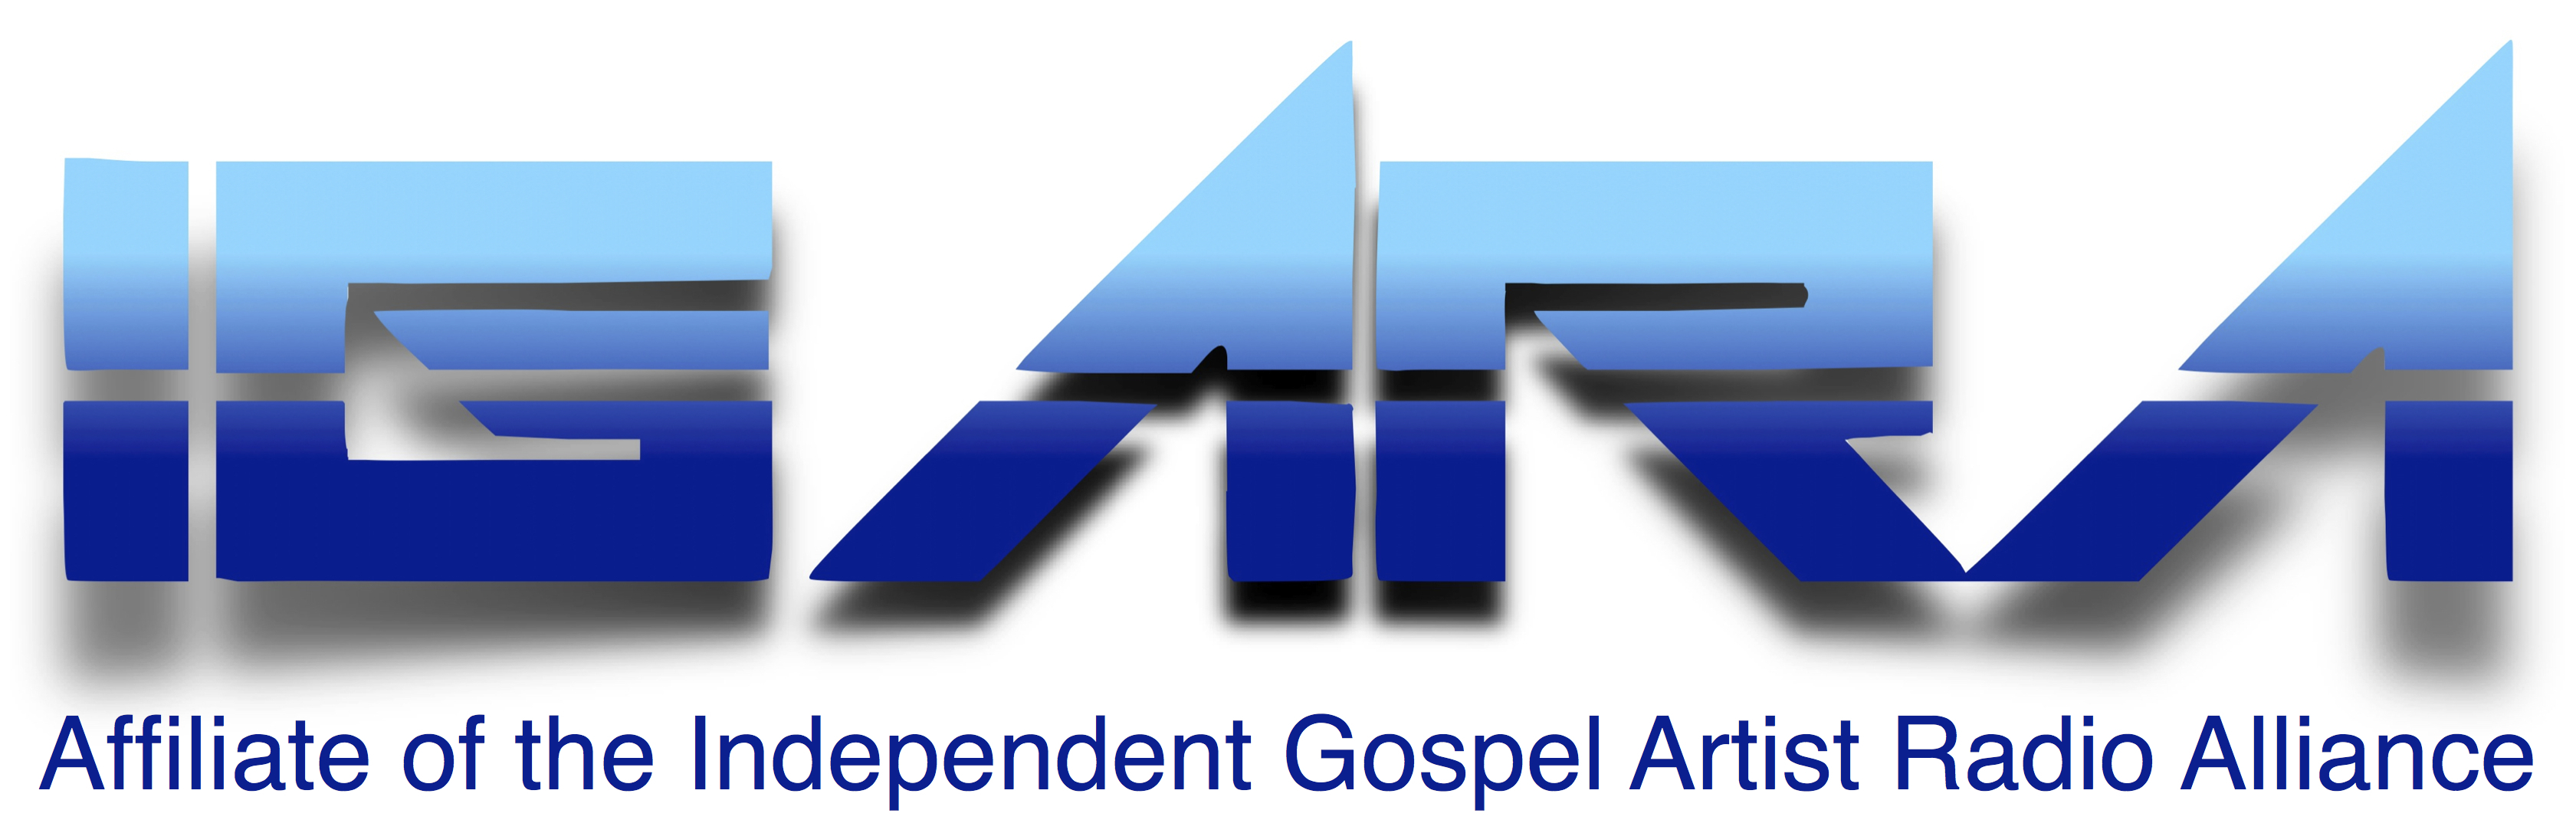 Independent Gospel Artist Radio Alliance